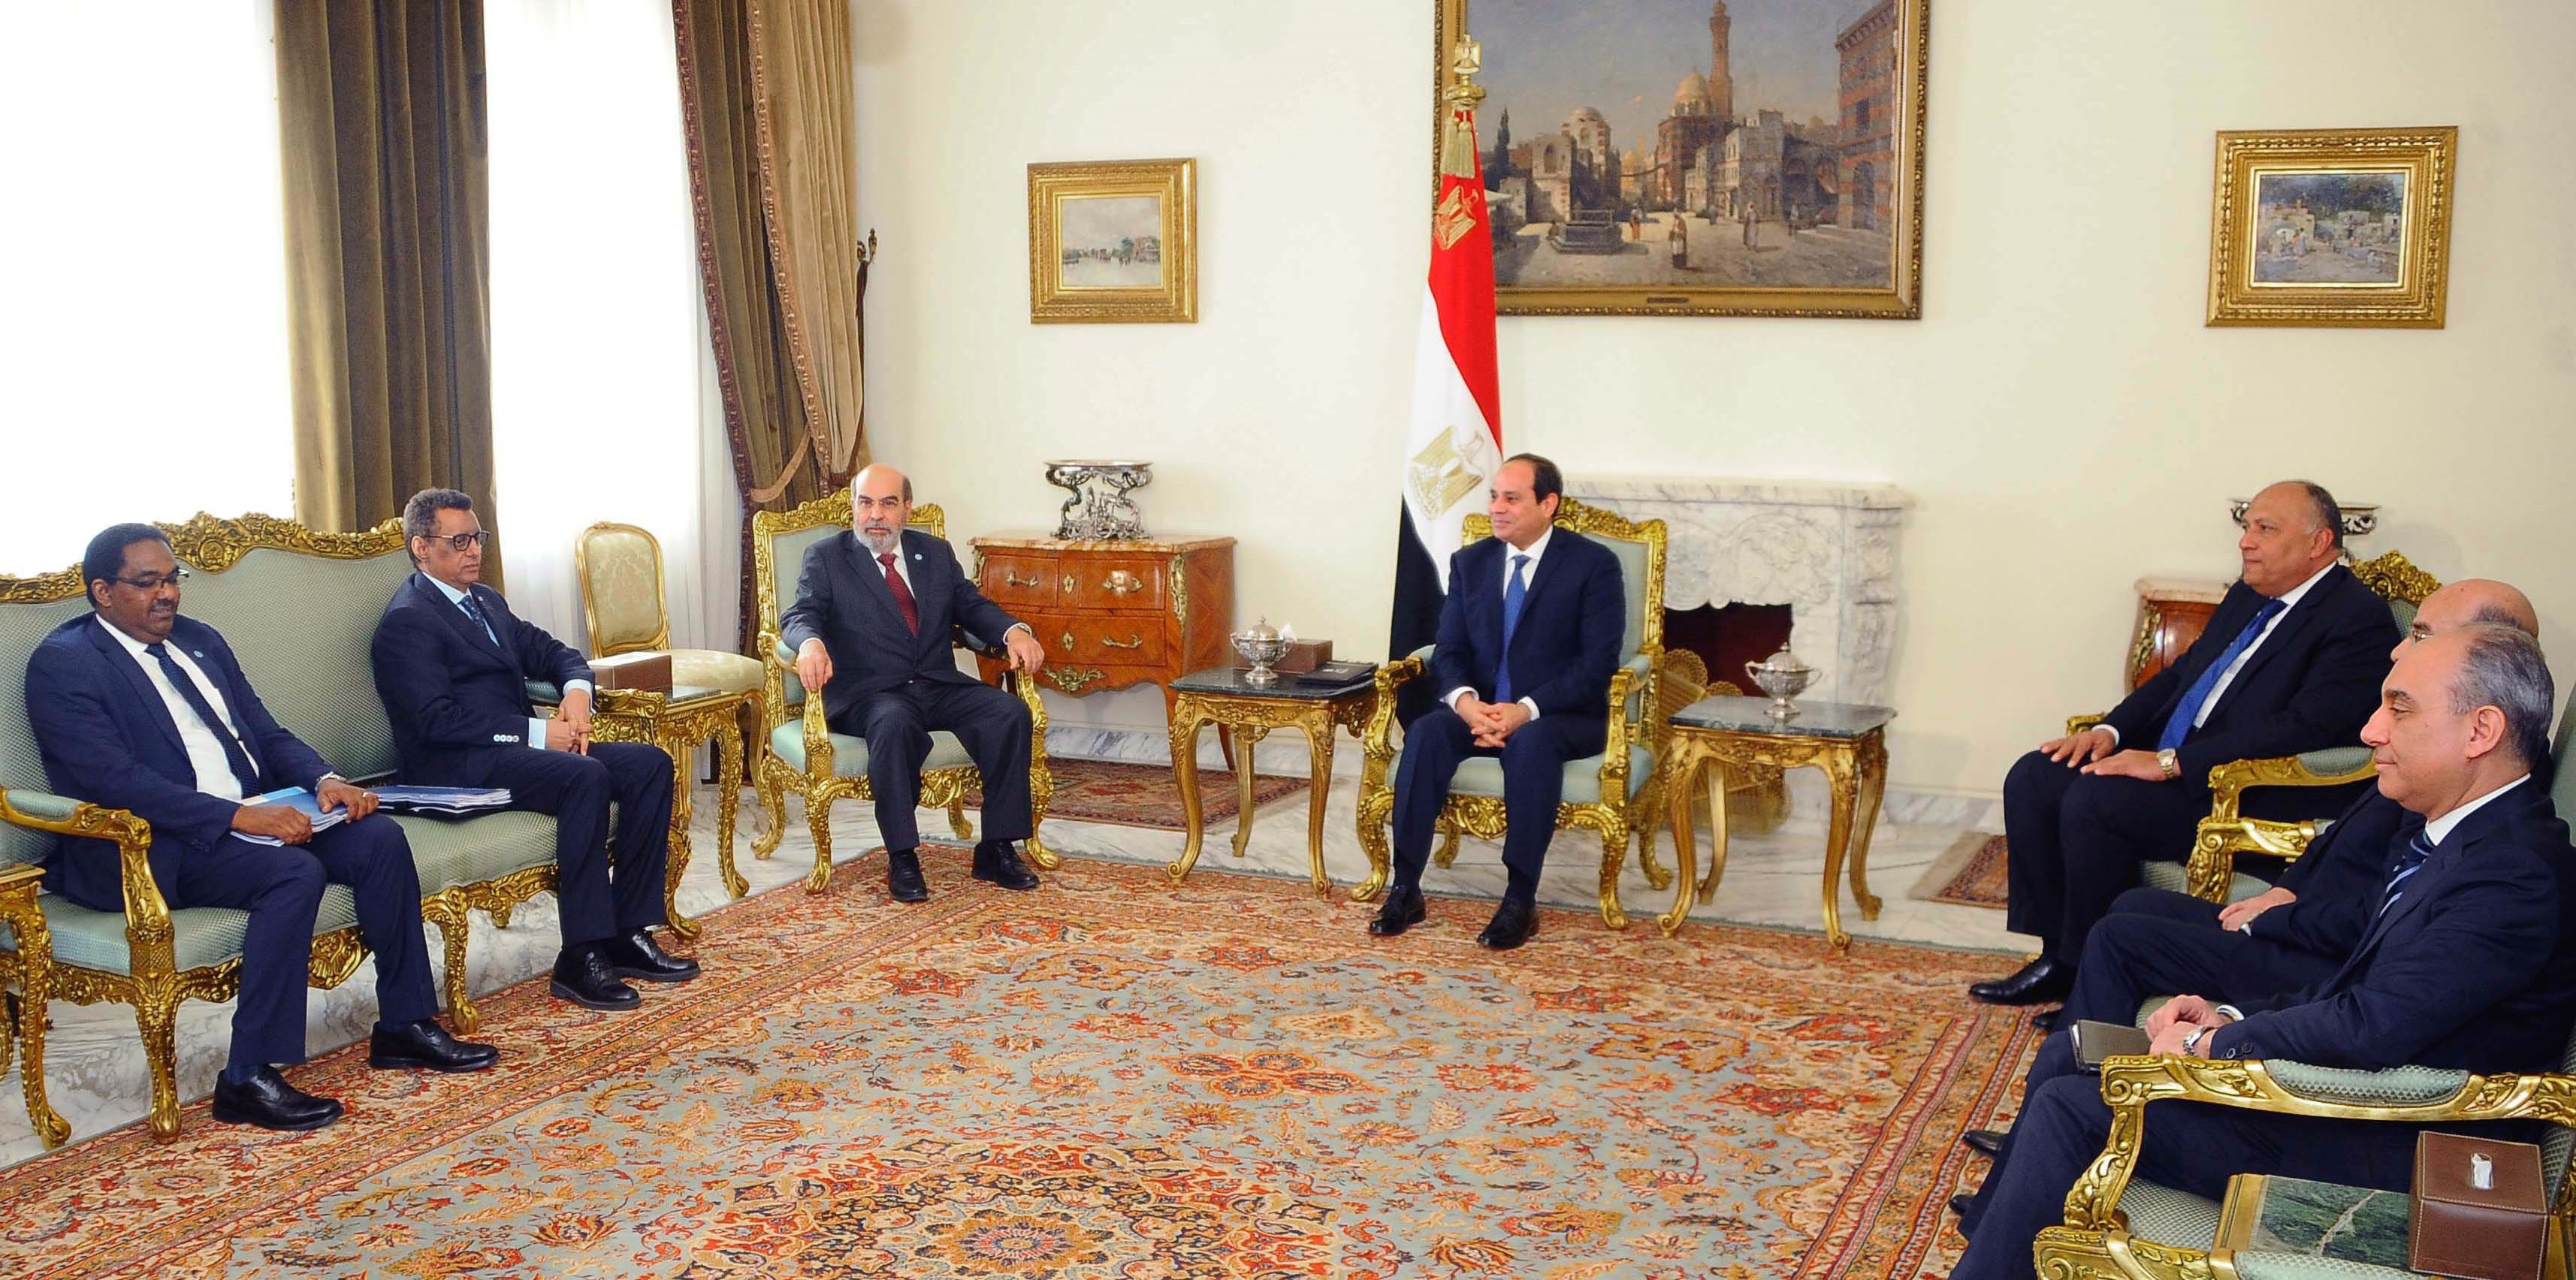 Photo courtesy of the office of the President of Egypt